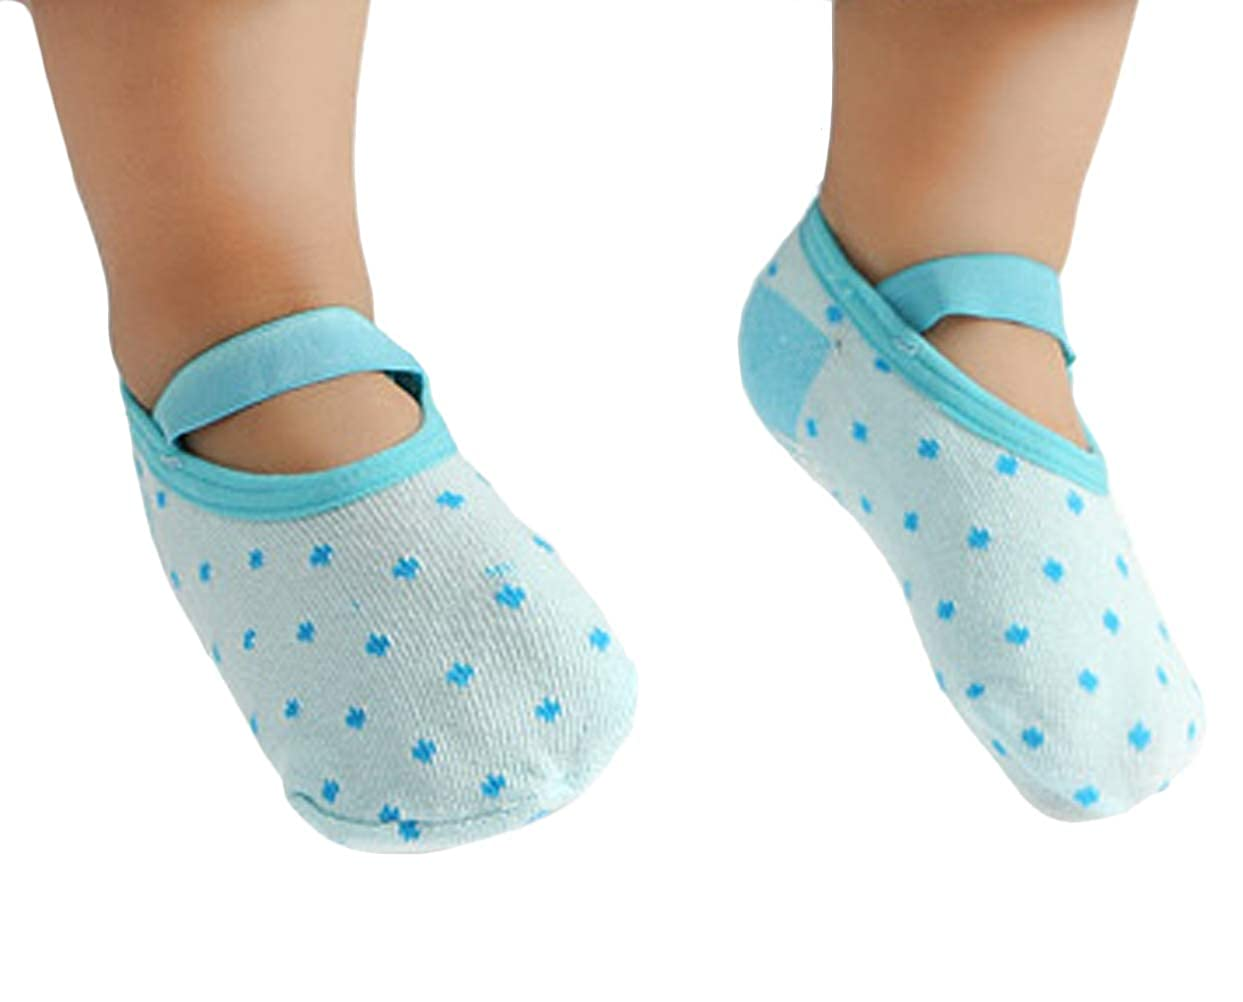 Pinksee 5 Pairs Toddler Baby Socks Anti Skid Non Skid Ballet Sock With Strap for 1-3 Years Old